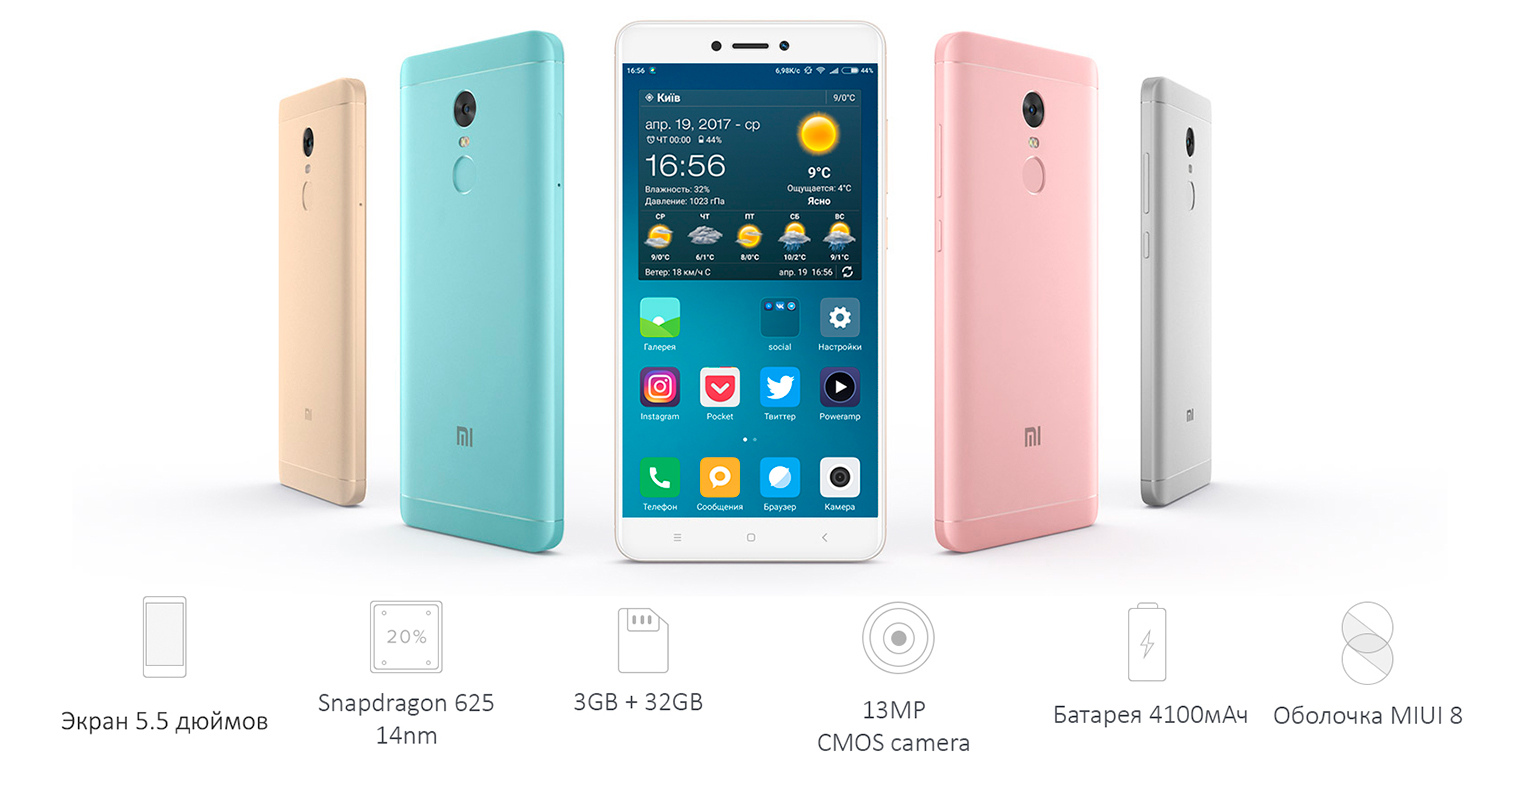 Xiaomi Redmi Note 4 Review Androidguru Eu: Xiaomi Redmi Note 4X 3/32GB Pink. Цена, купить